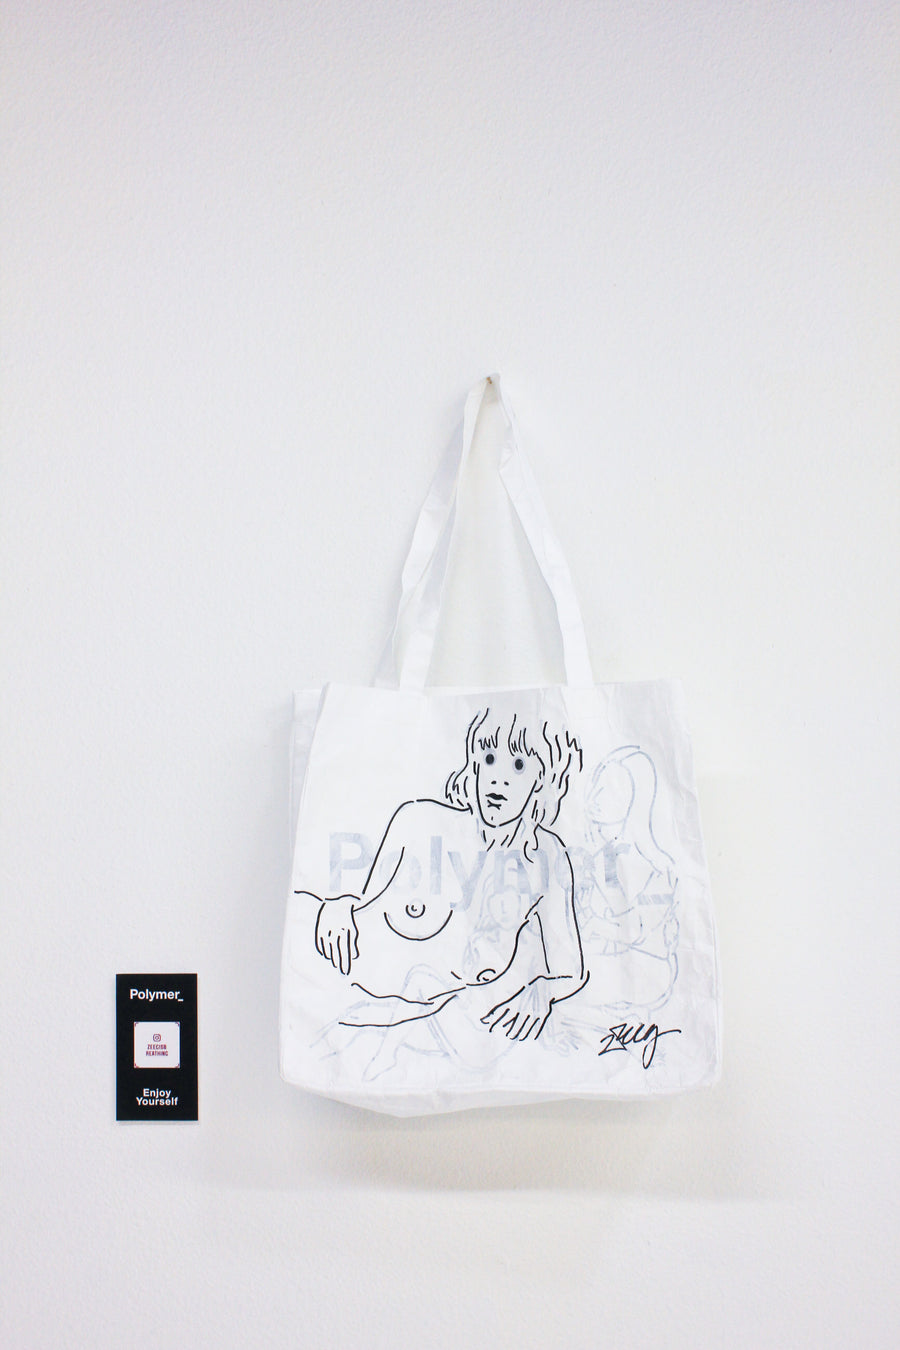 Polymer_ Enjoy Yourself Art Tote by Nick Ziegel